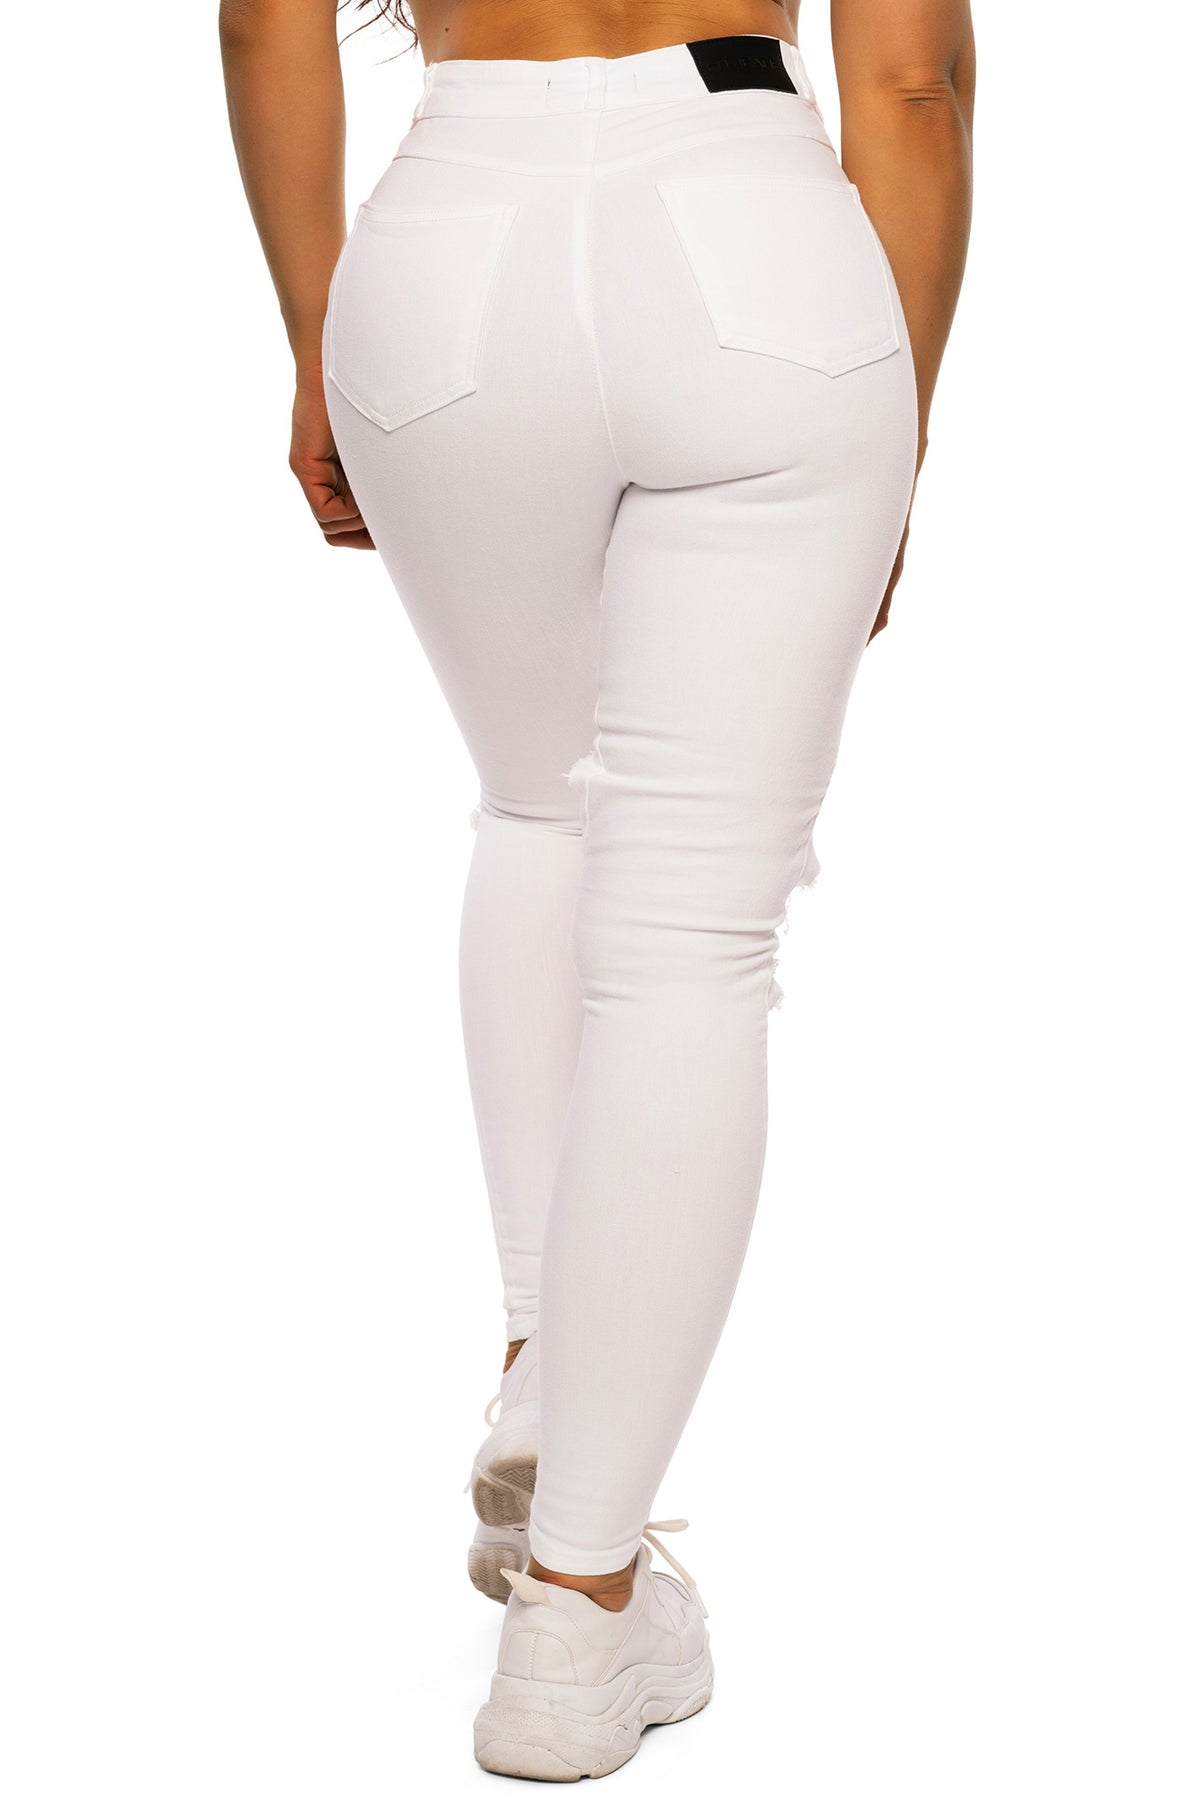 Womens Regular Pastel Super Ripped High Waisted Fitjeans - White